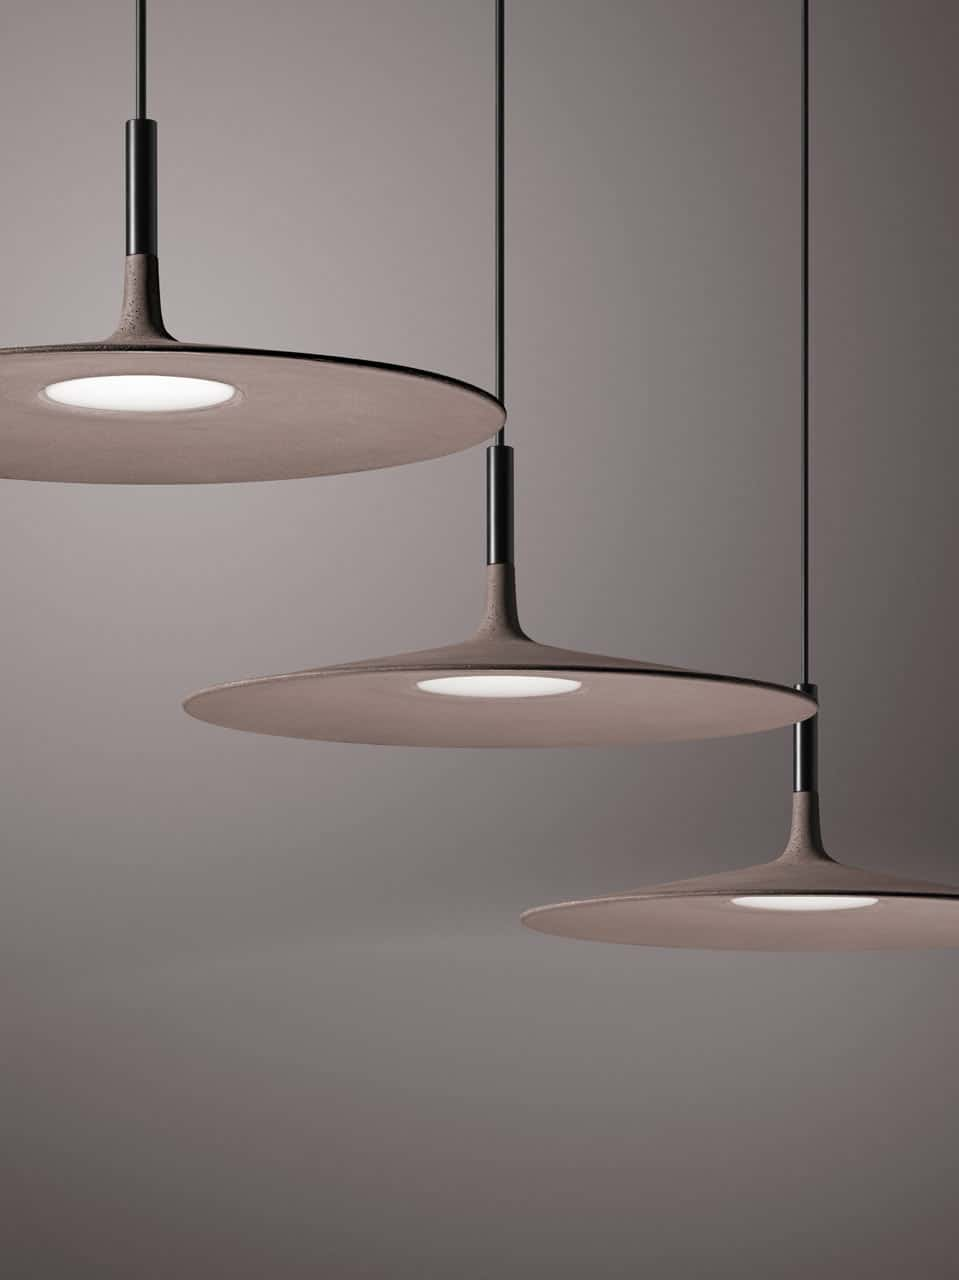 Aplomb Large by Studio Lucidi & Pevere for Foscarini